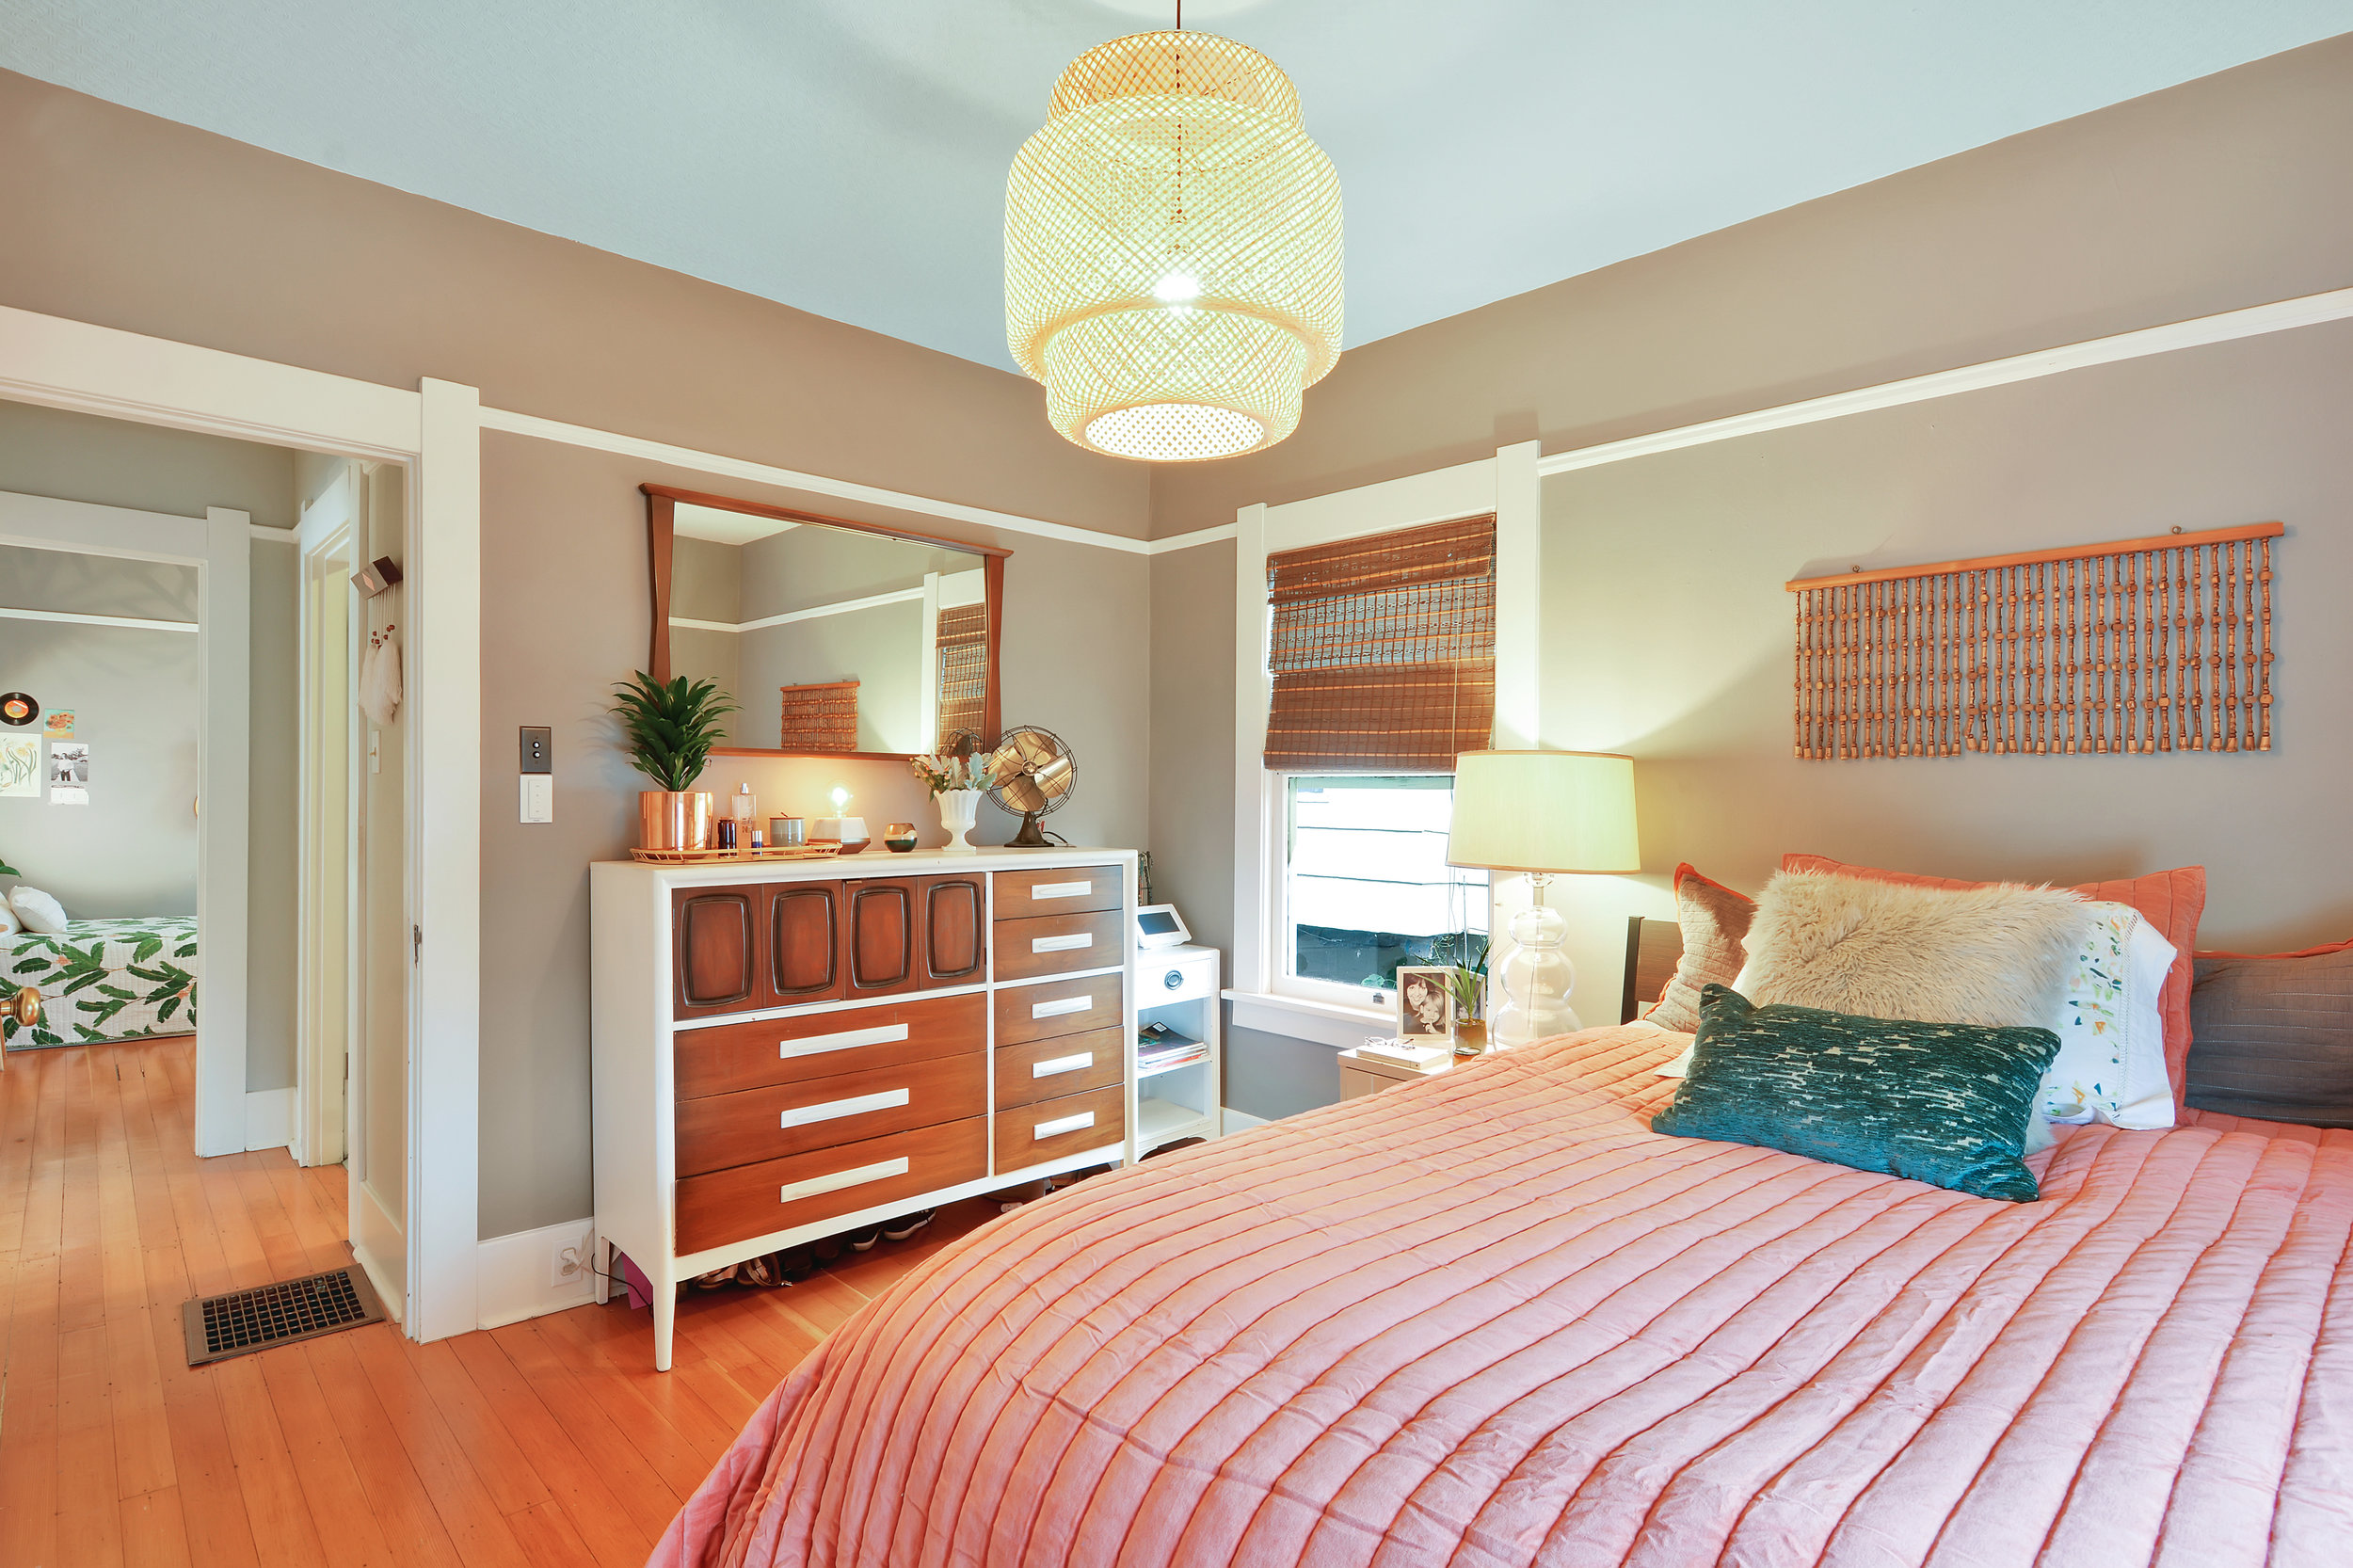 One of three main floor bedrooms featuring fir floors, wide trim, picture rail, and warm neutral tones.